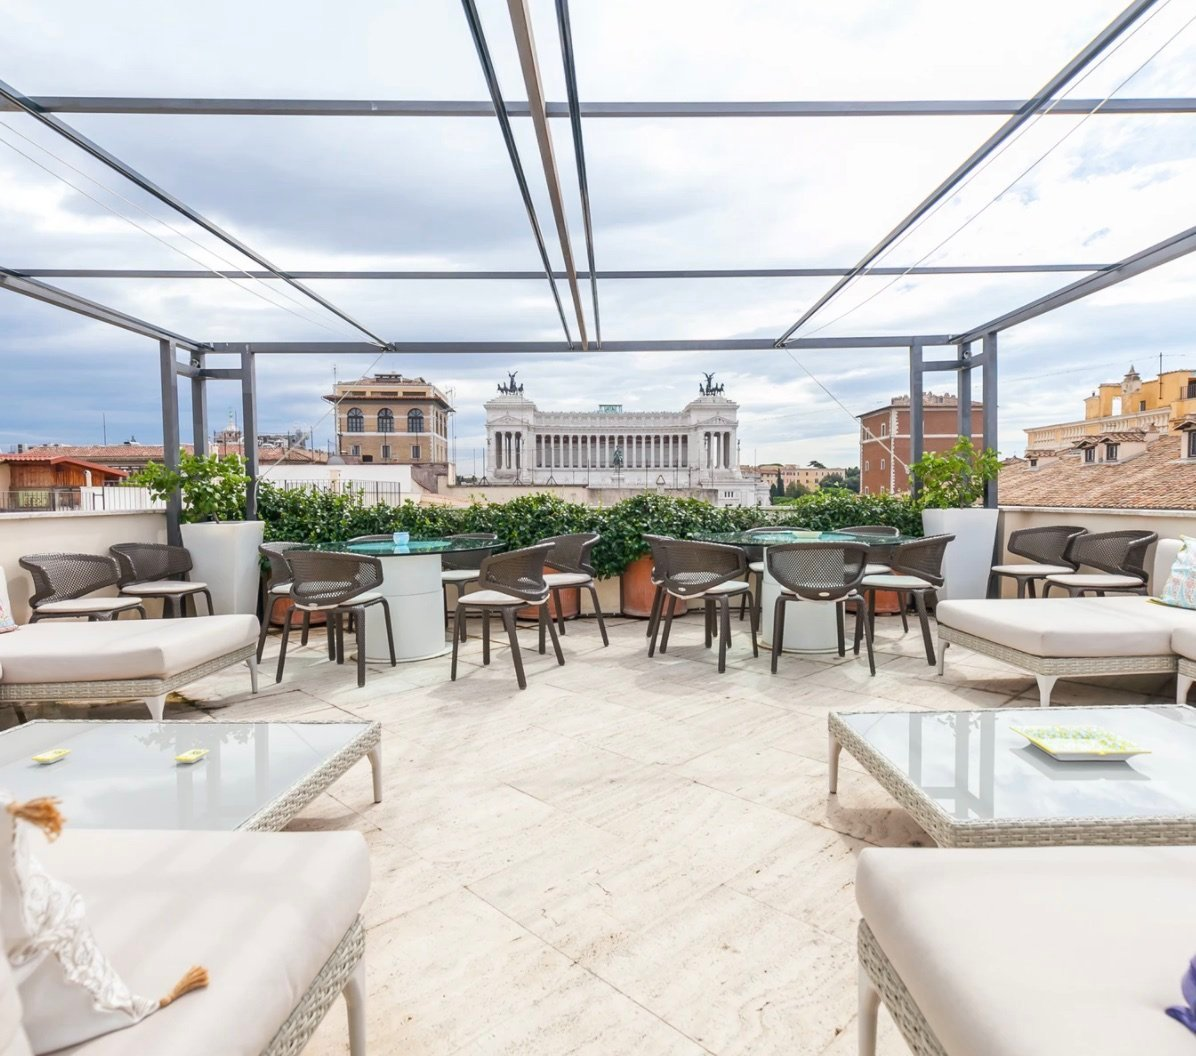 Apartment with view of Piazza Venezia